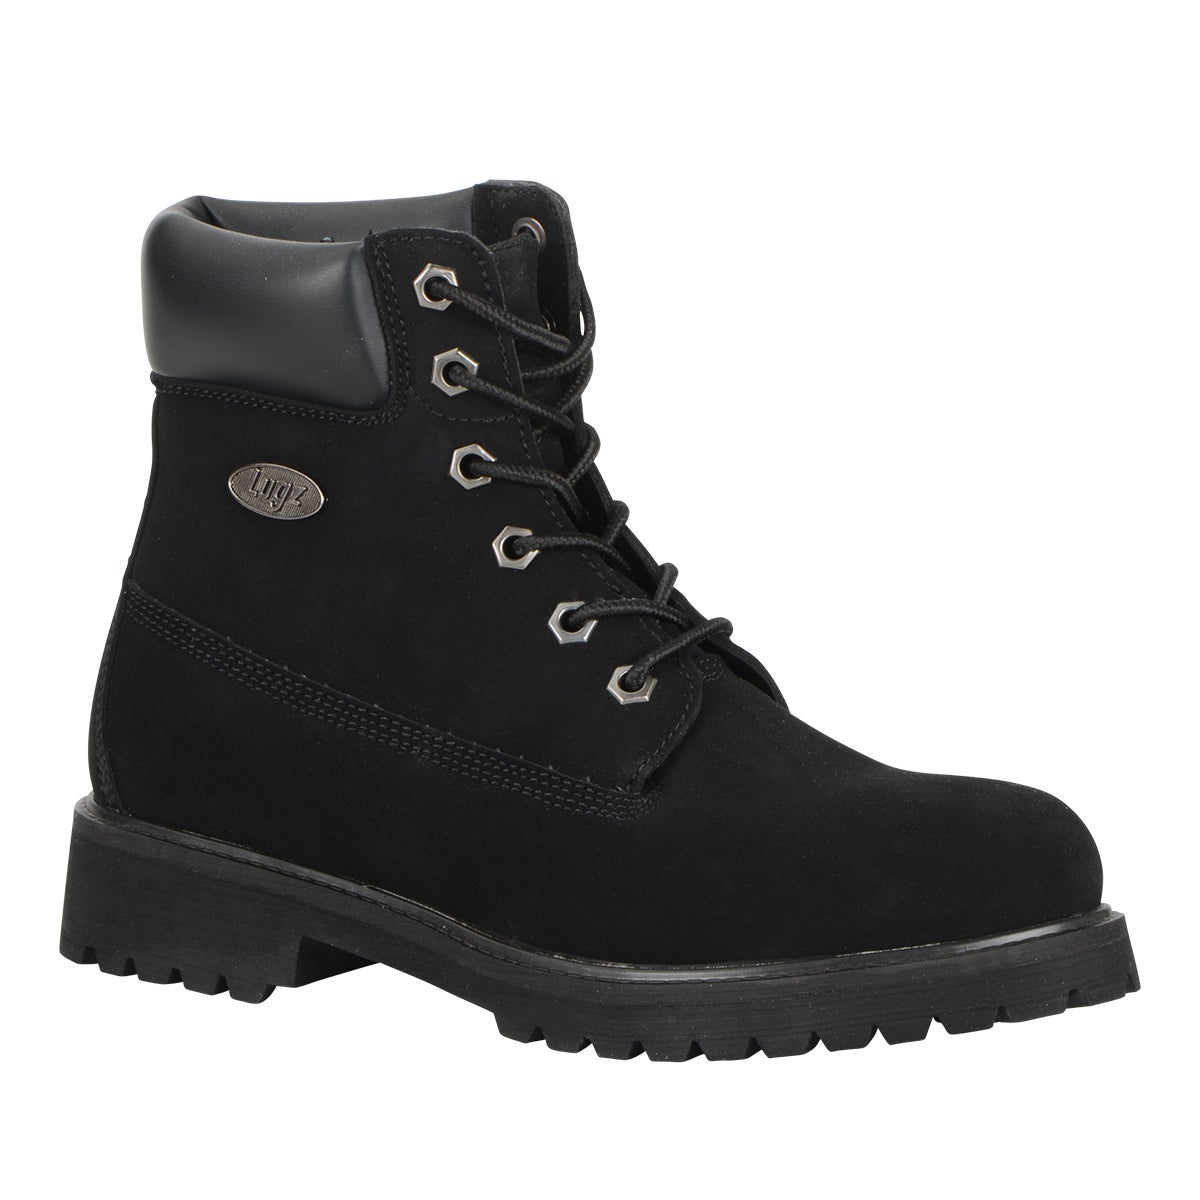 Lugz Women 'Convoy' Lace-up Boot (10), Black (leather)